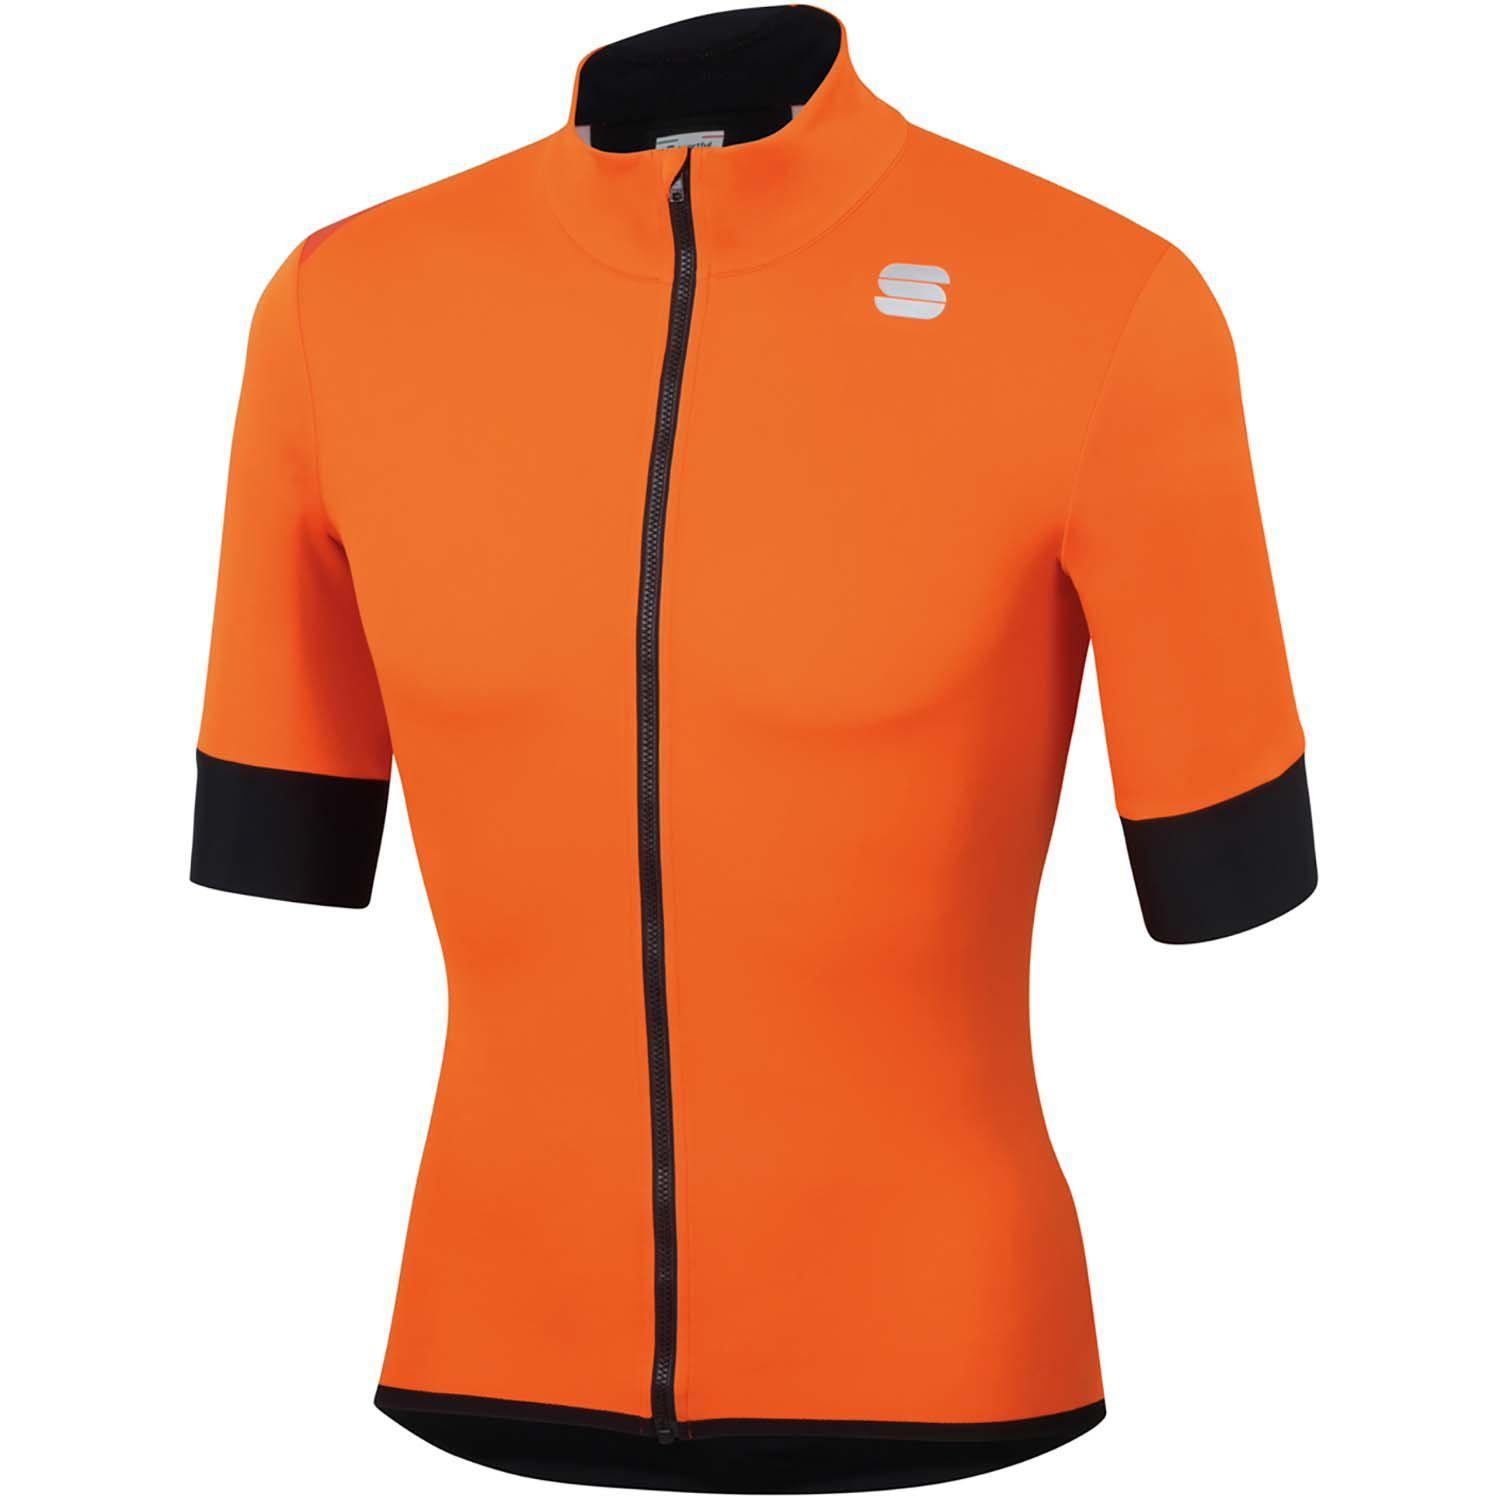 Sportful-Sportful Fiandre Light NoRain Short Sleeve Jacket-Orange SDR-S-SF200228502-saddleback-elite-performance-cycling